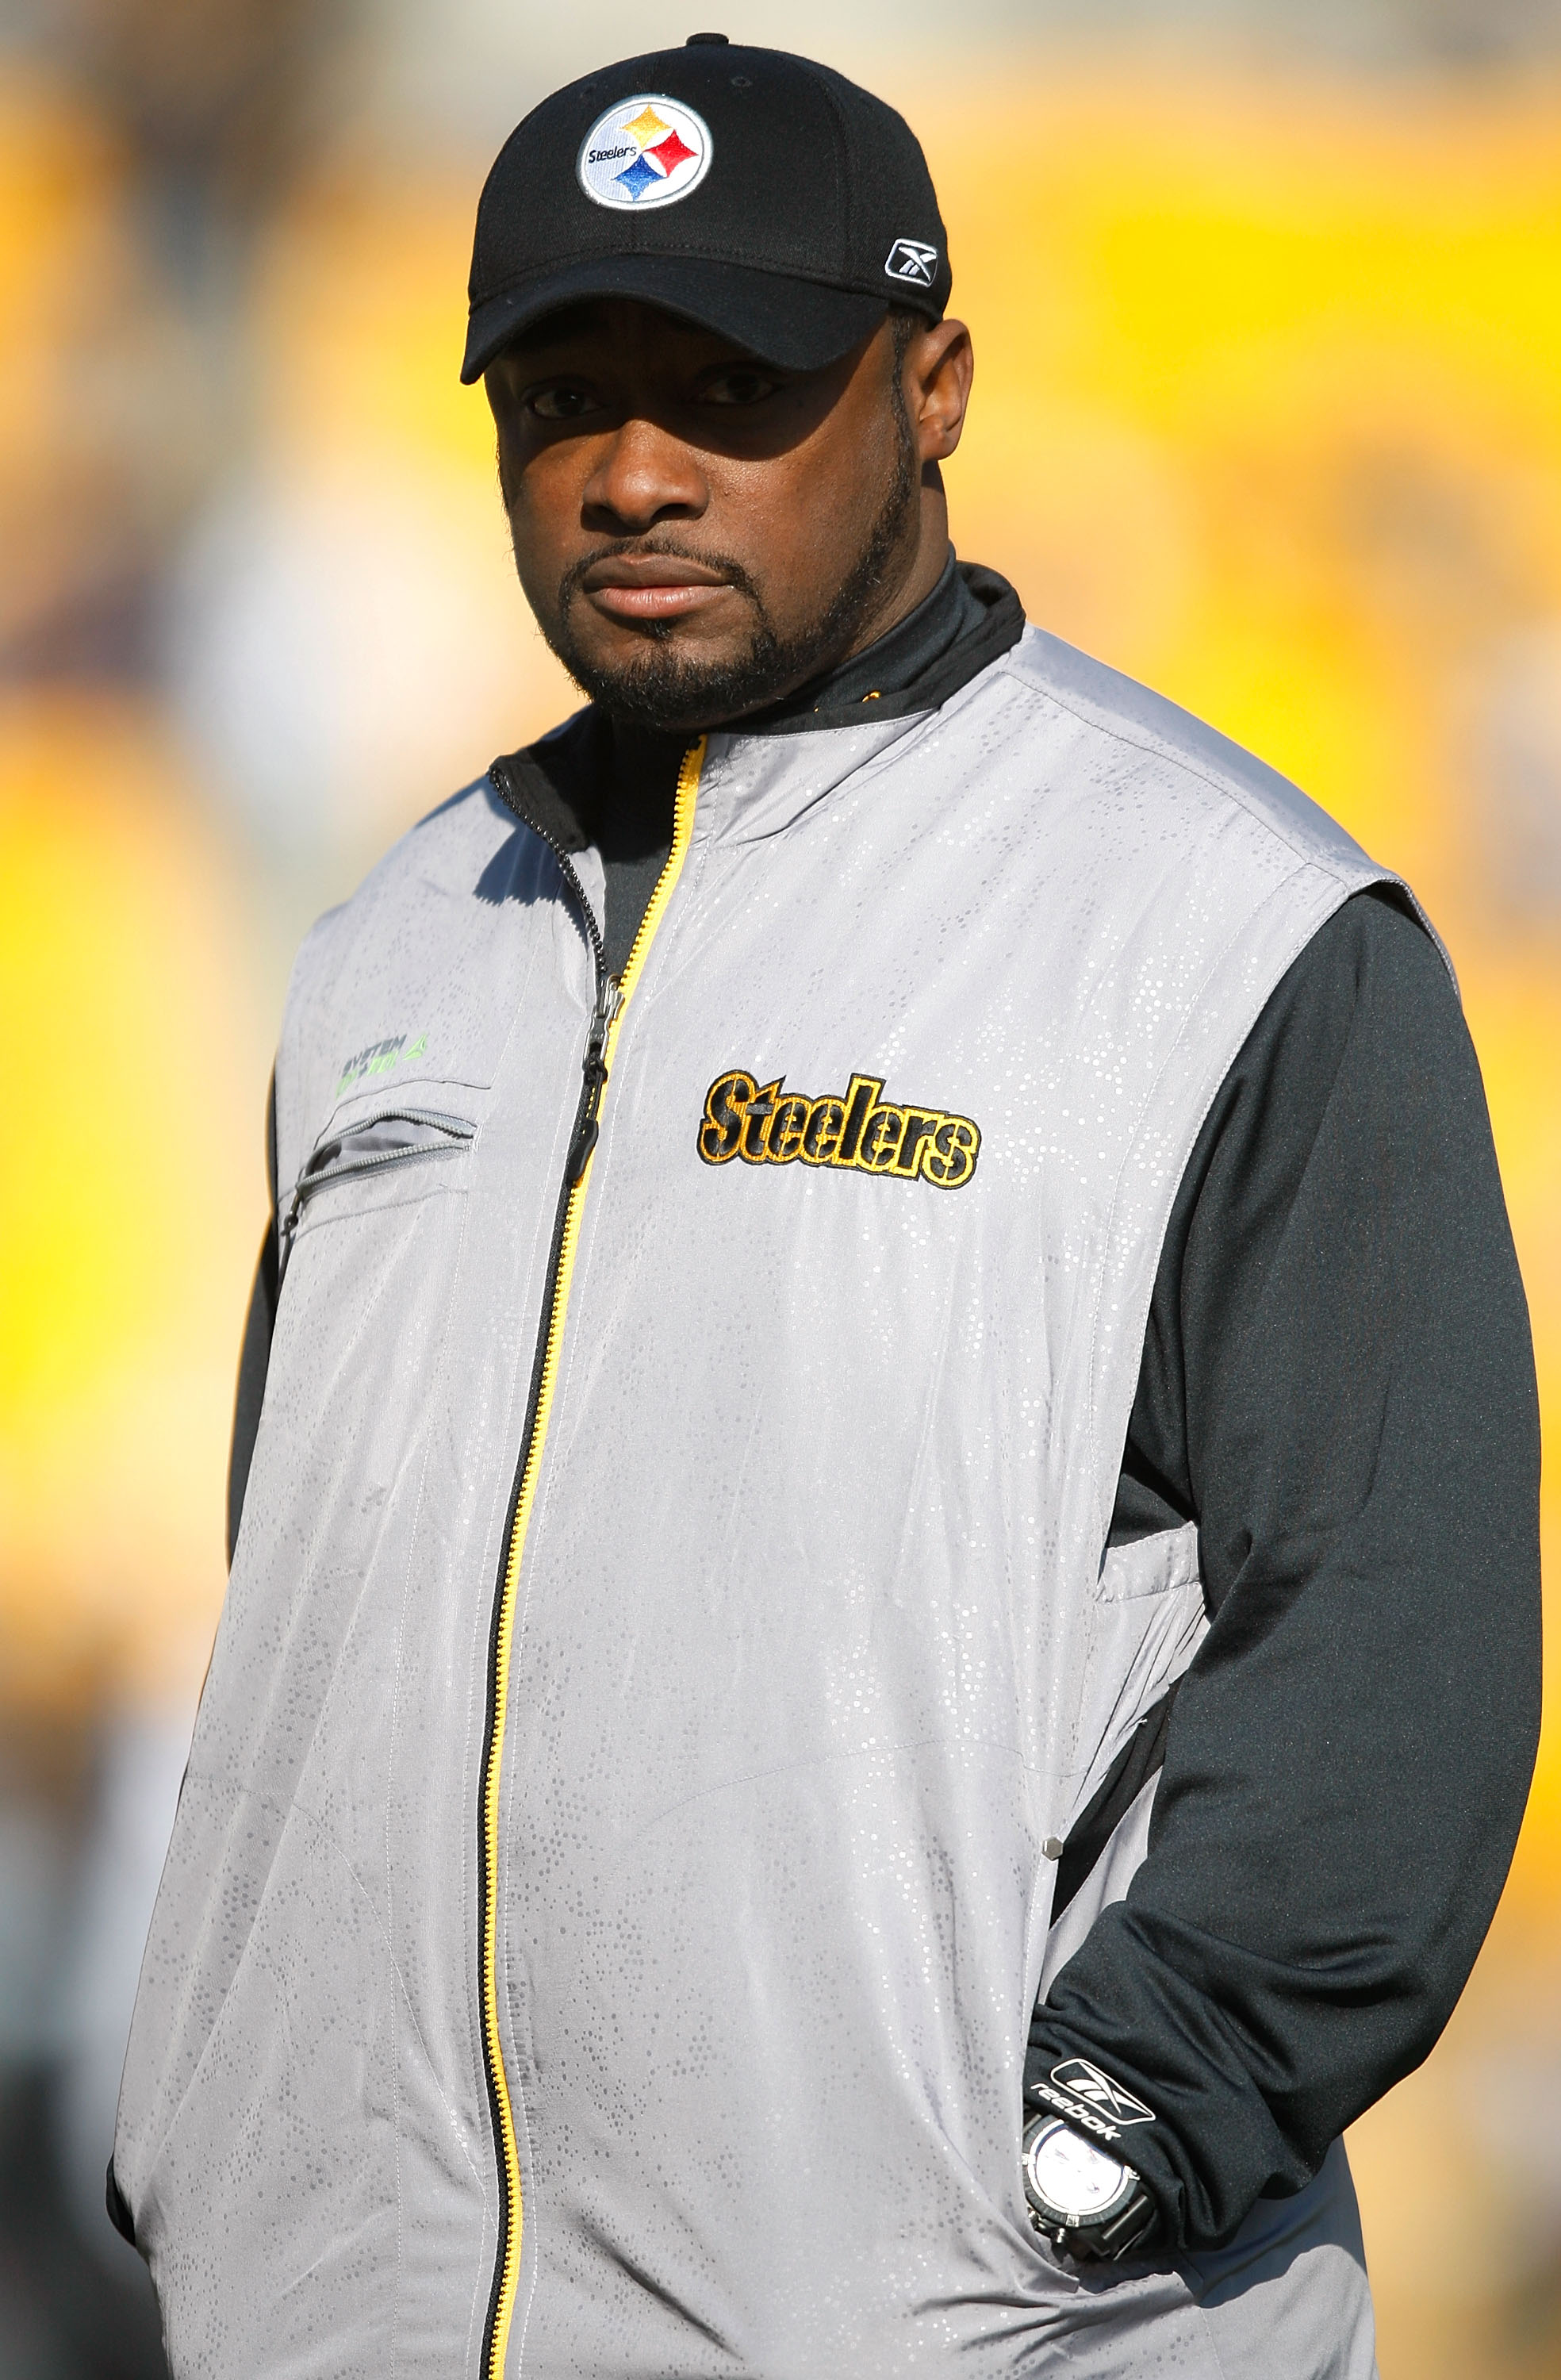 PITTSBURGH - DECEMBER 06:  Head coach Mike Tomlin of the Pittsburgh Steelers watches his team before the game against the Oakland Raiders on December 6, 2009 at Heinz Field in Pittsburgh, Pennsylvania.  (Photo by Jared Wickerham/Getty Images)